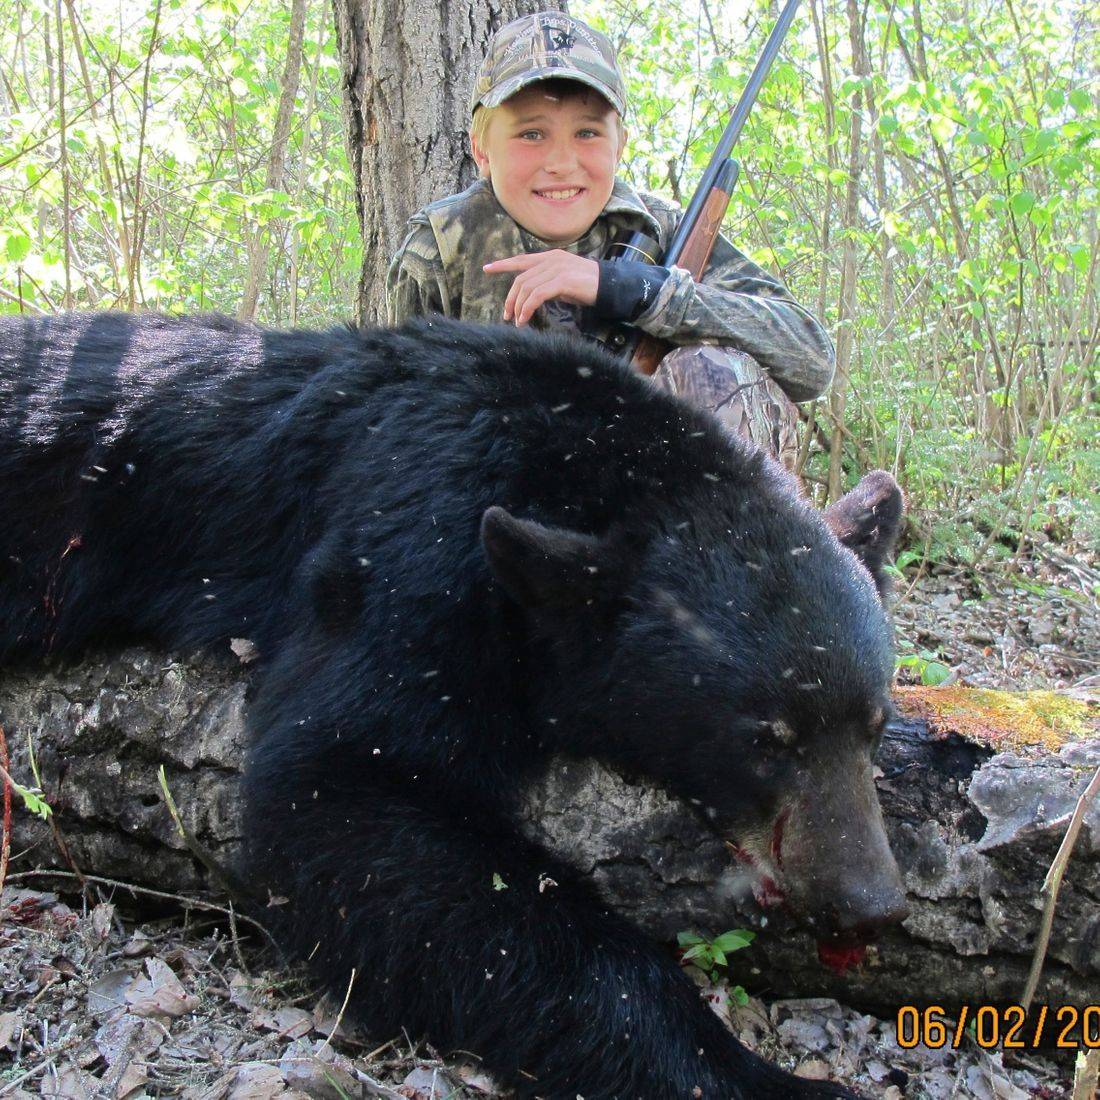 Manitoba Black bear, bear hunting, black bear, Manitoba,  fishing